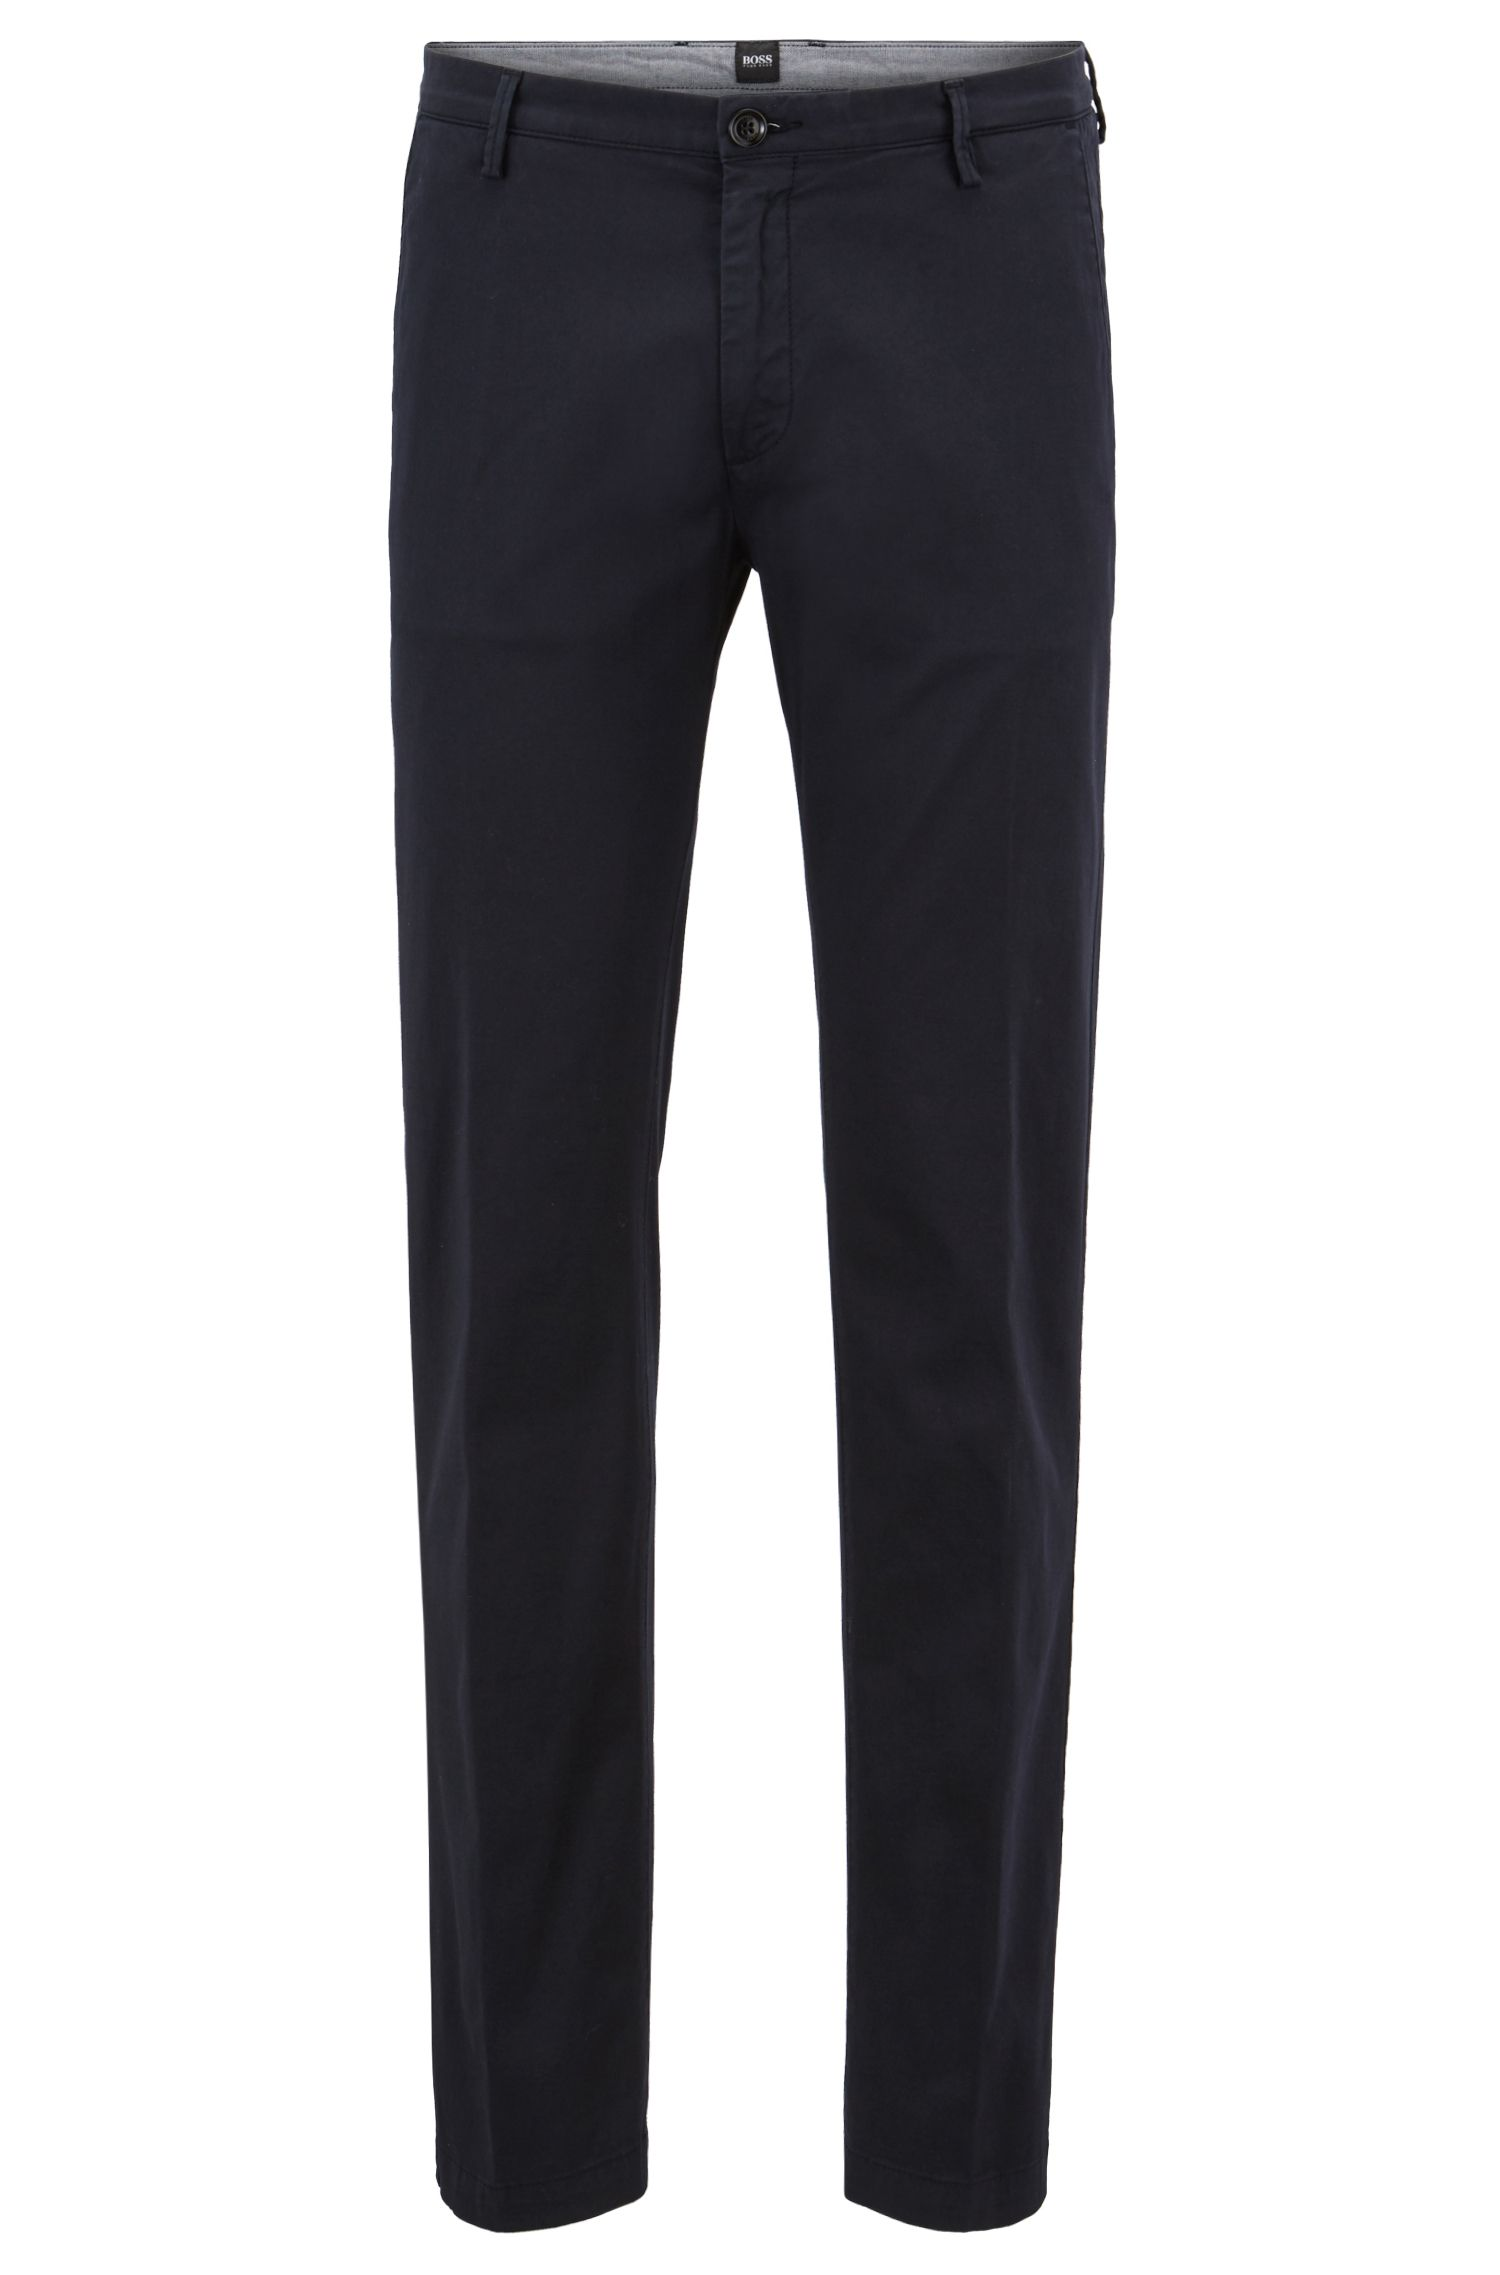 'Rice D' | Slim Fit, Cotton Stretch Chino Pants